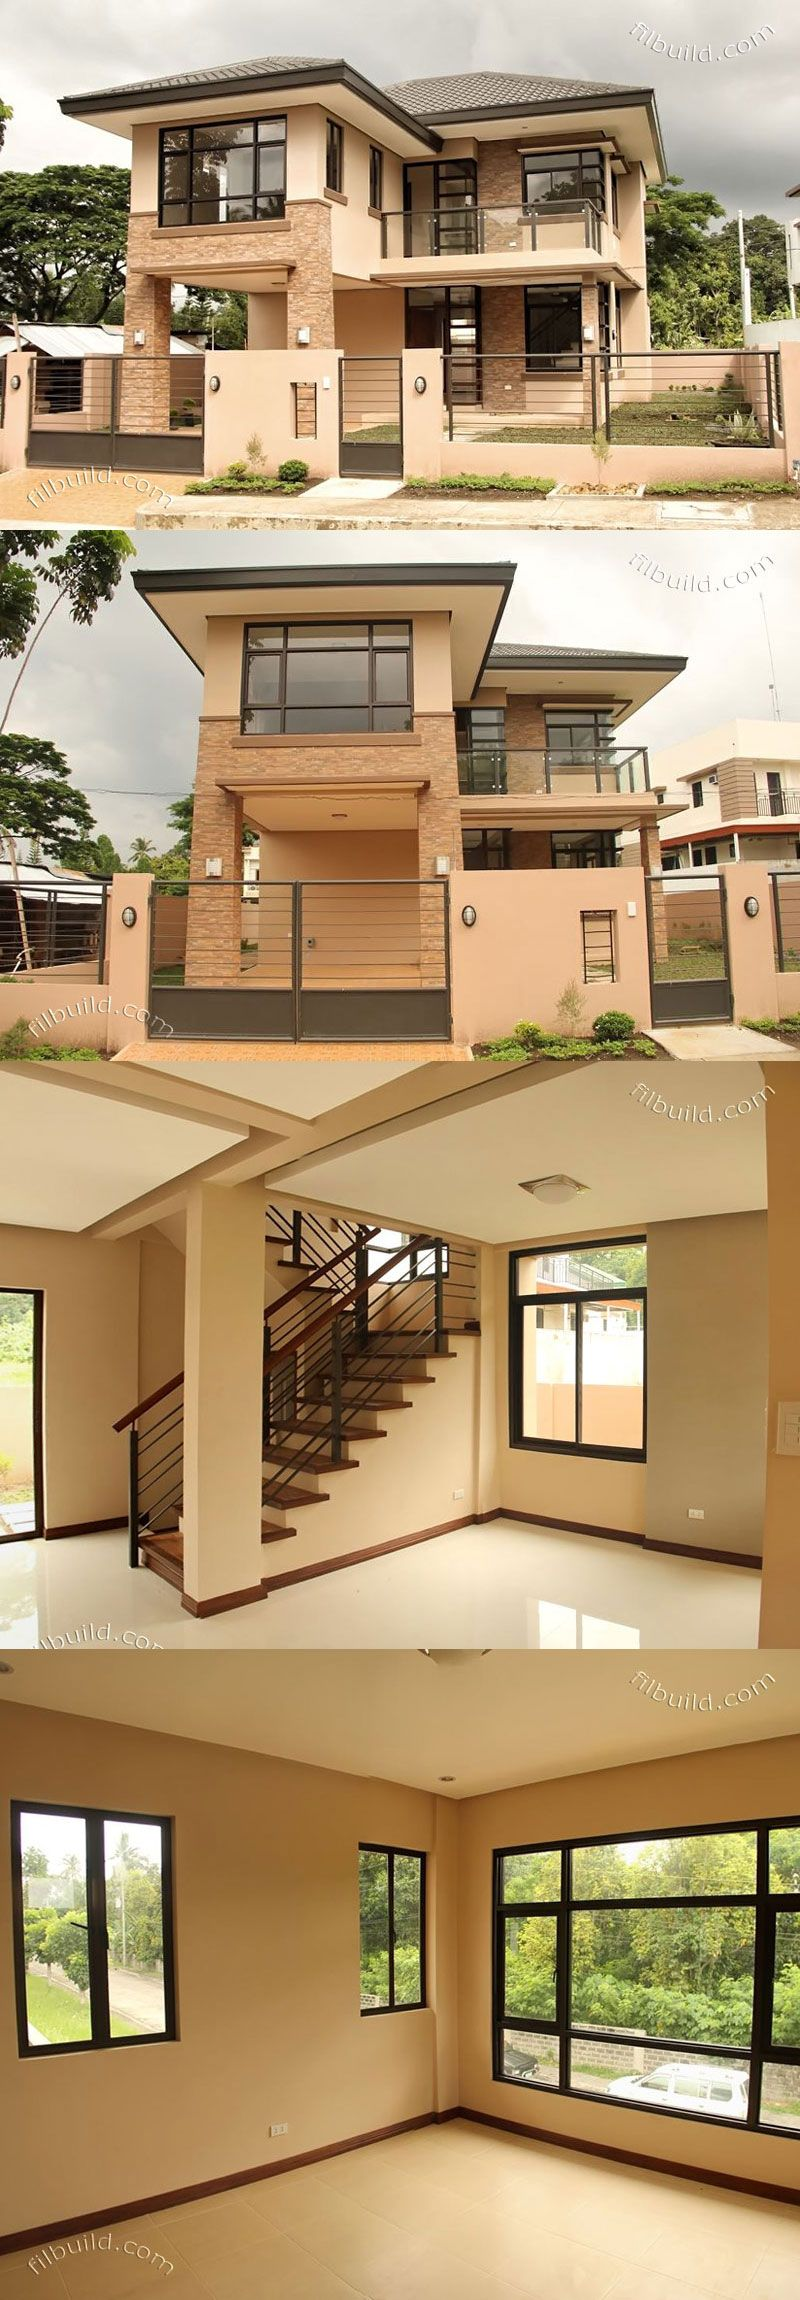 2 Storey Modern Asian Designed House with 4 Bedrooms